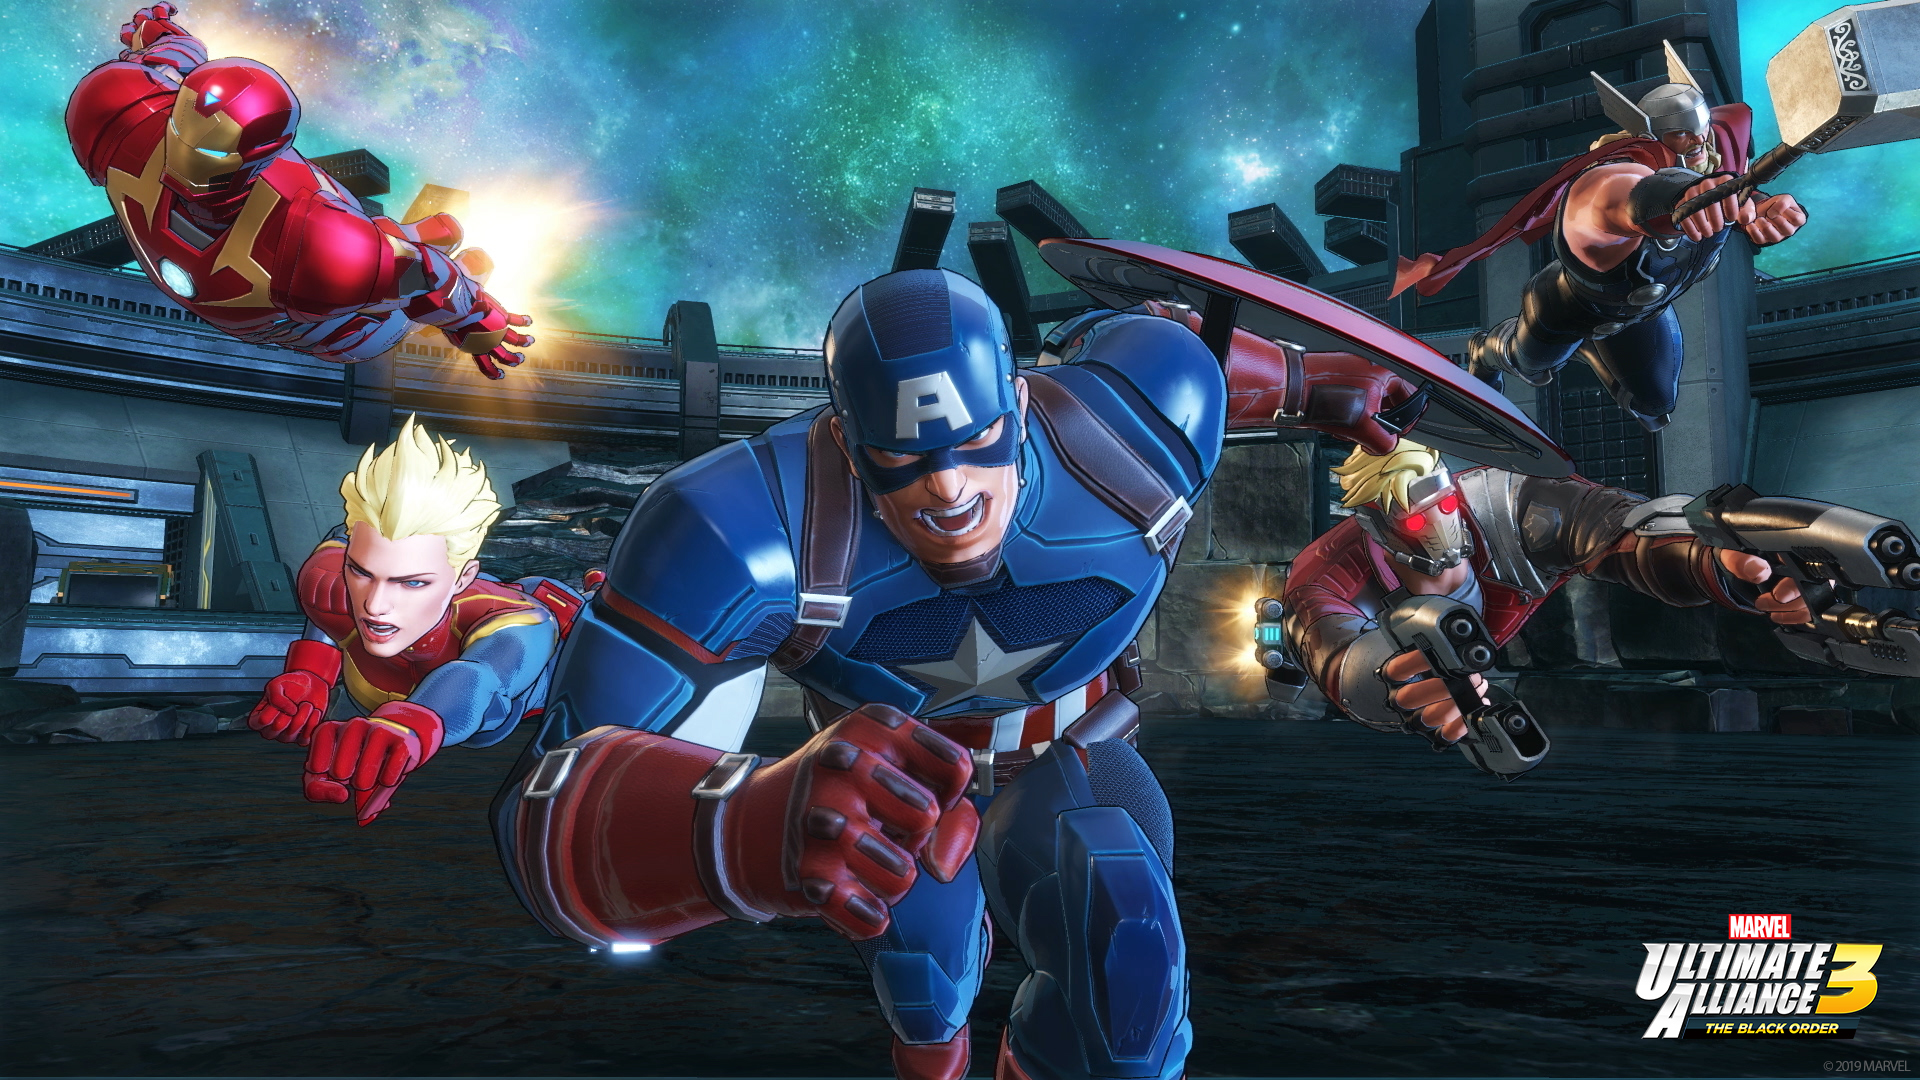 Marvel Ultimate Alliance 3: The Black Order Takes The Series In A New Route